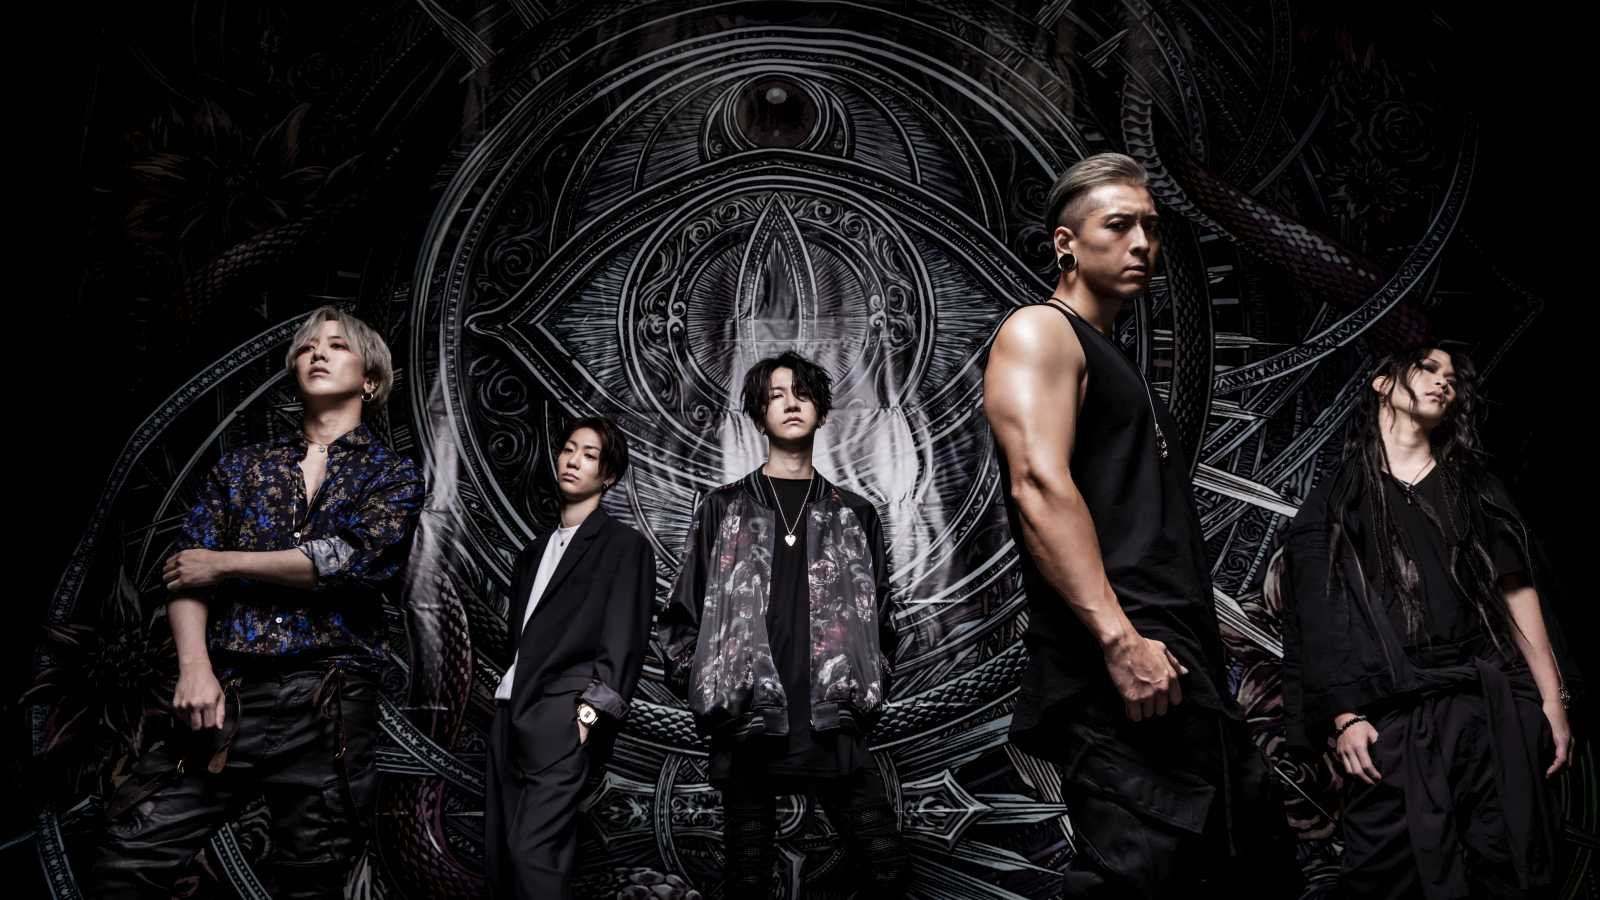 NOCTURNAL BLOODLUST Unveil New Guitarists, Announce New Mini-Album © NOCTURNAL BLOODLUST. All rights reserved.